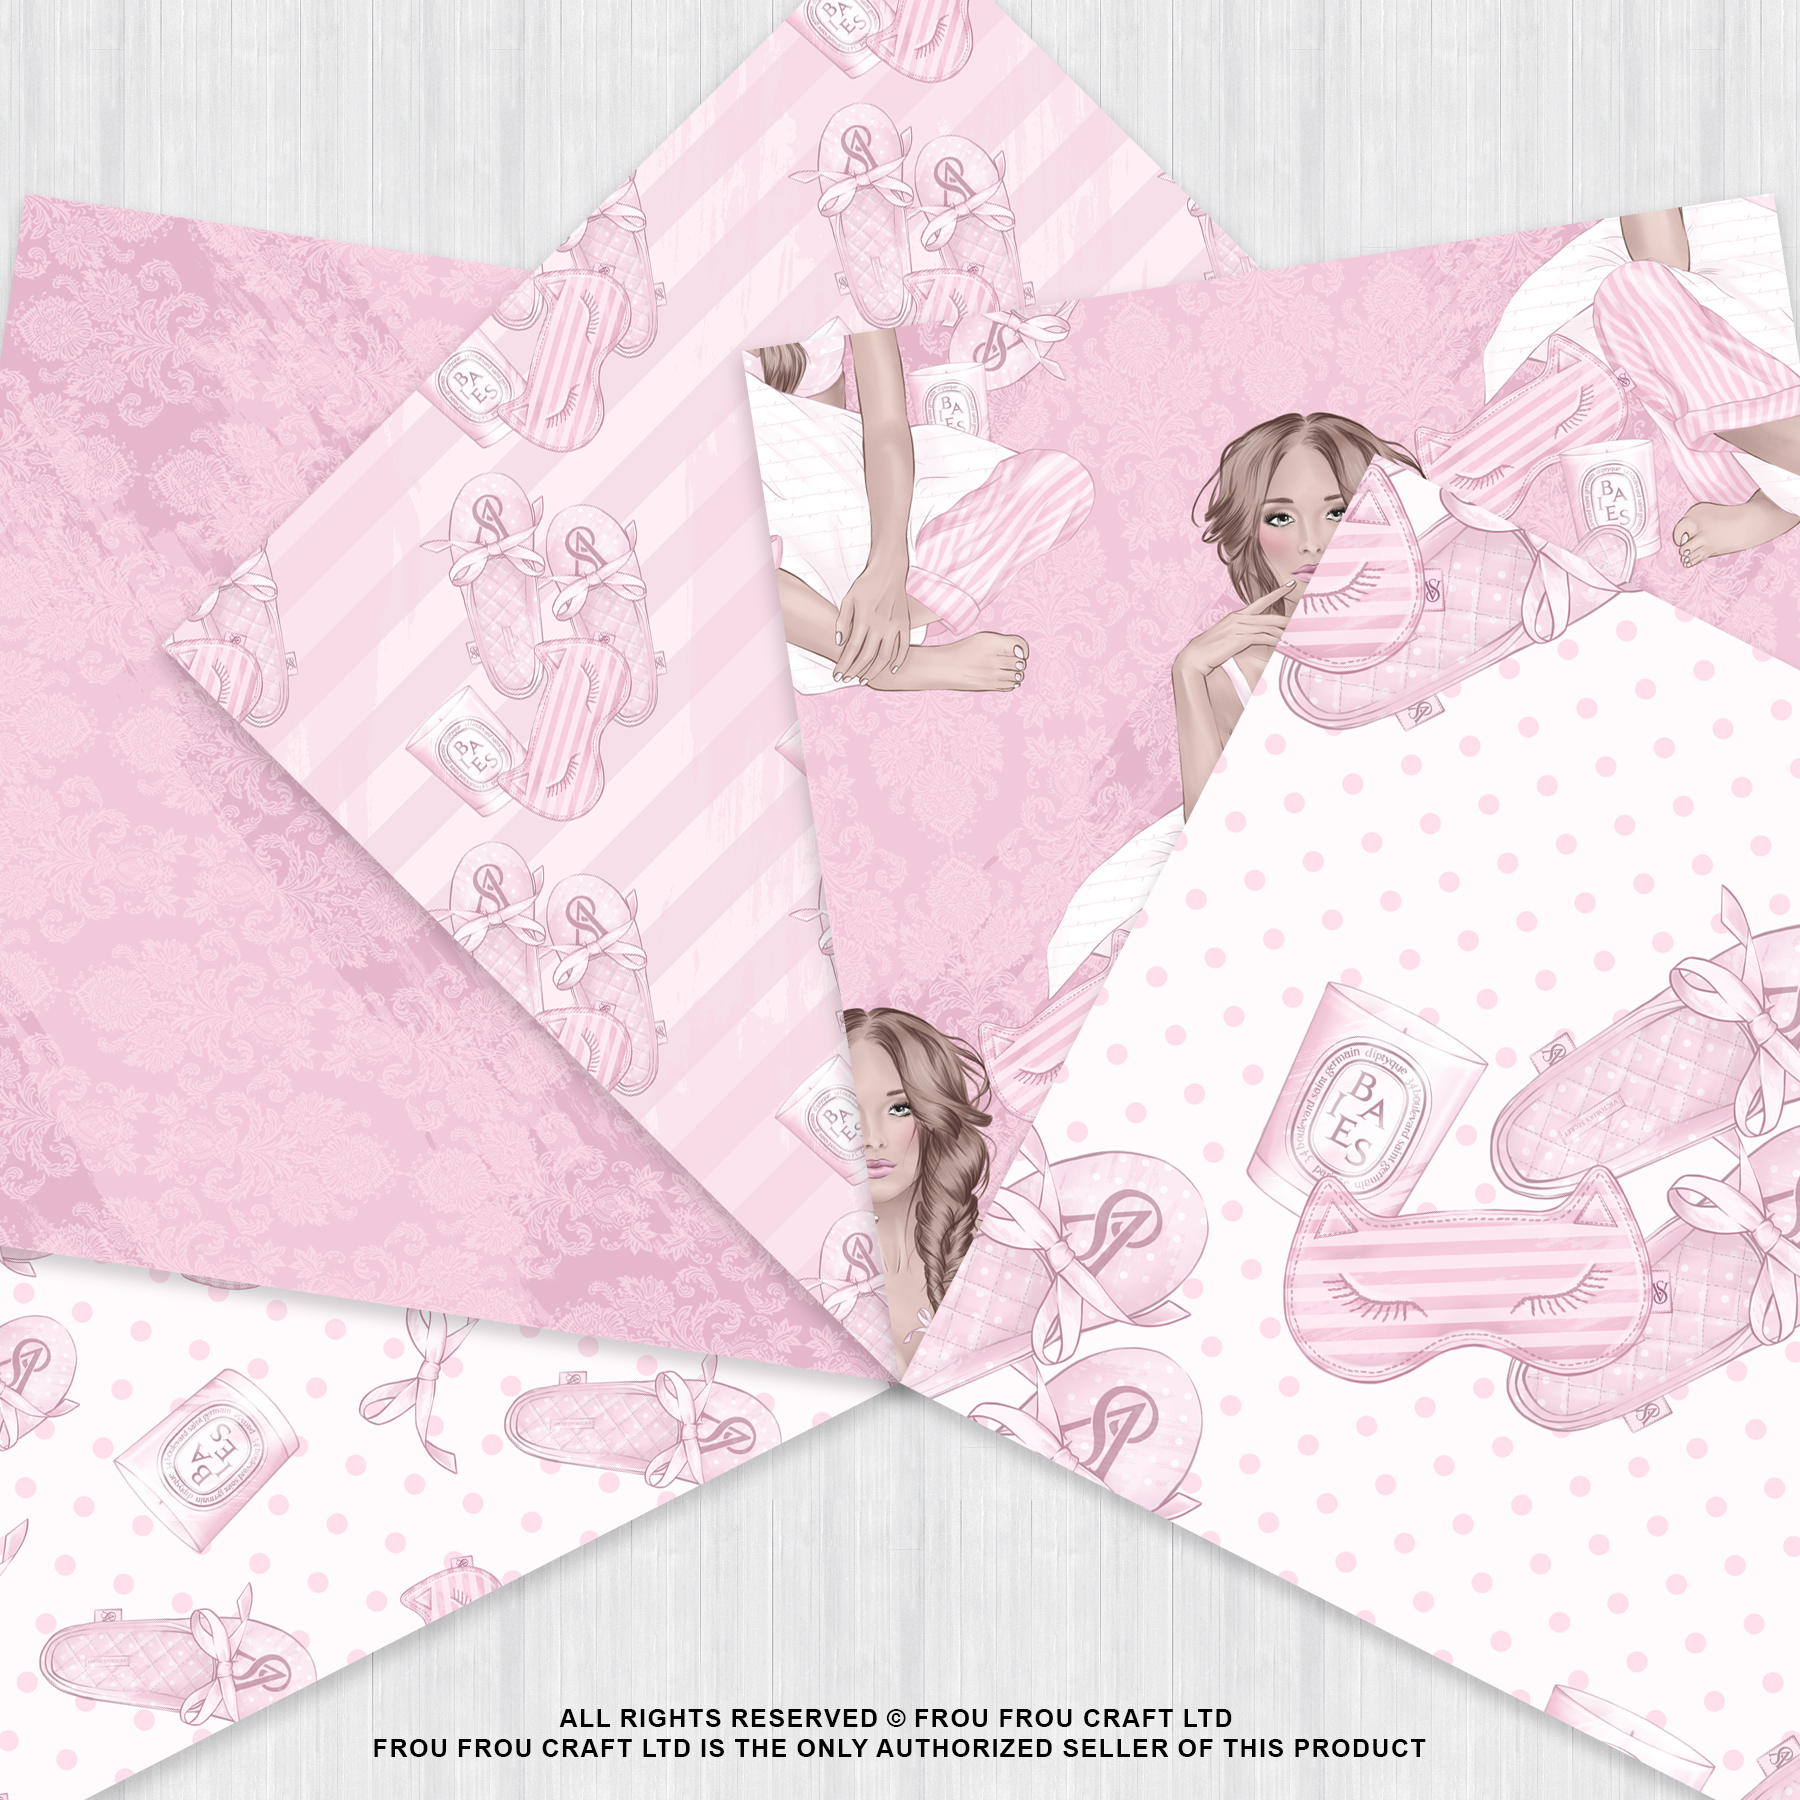 Holiday Weekend Fashion Girl Pijamas Paper Pack example image 3